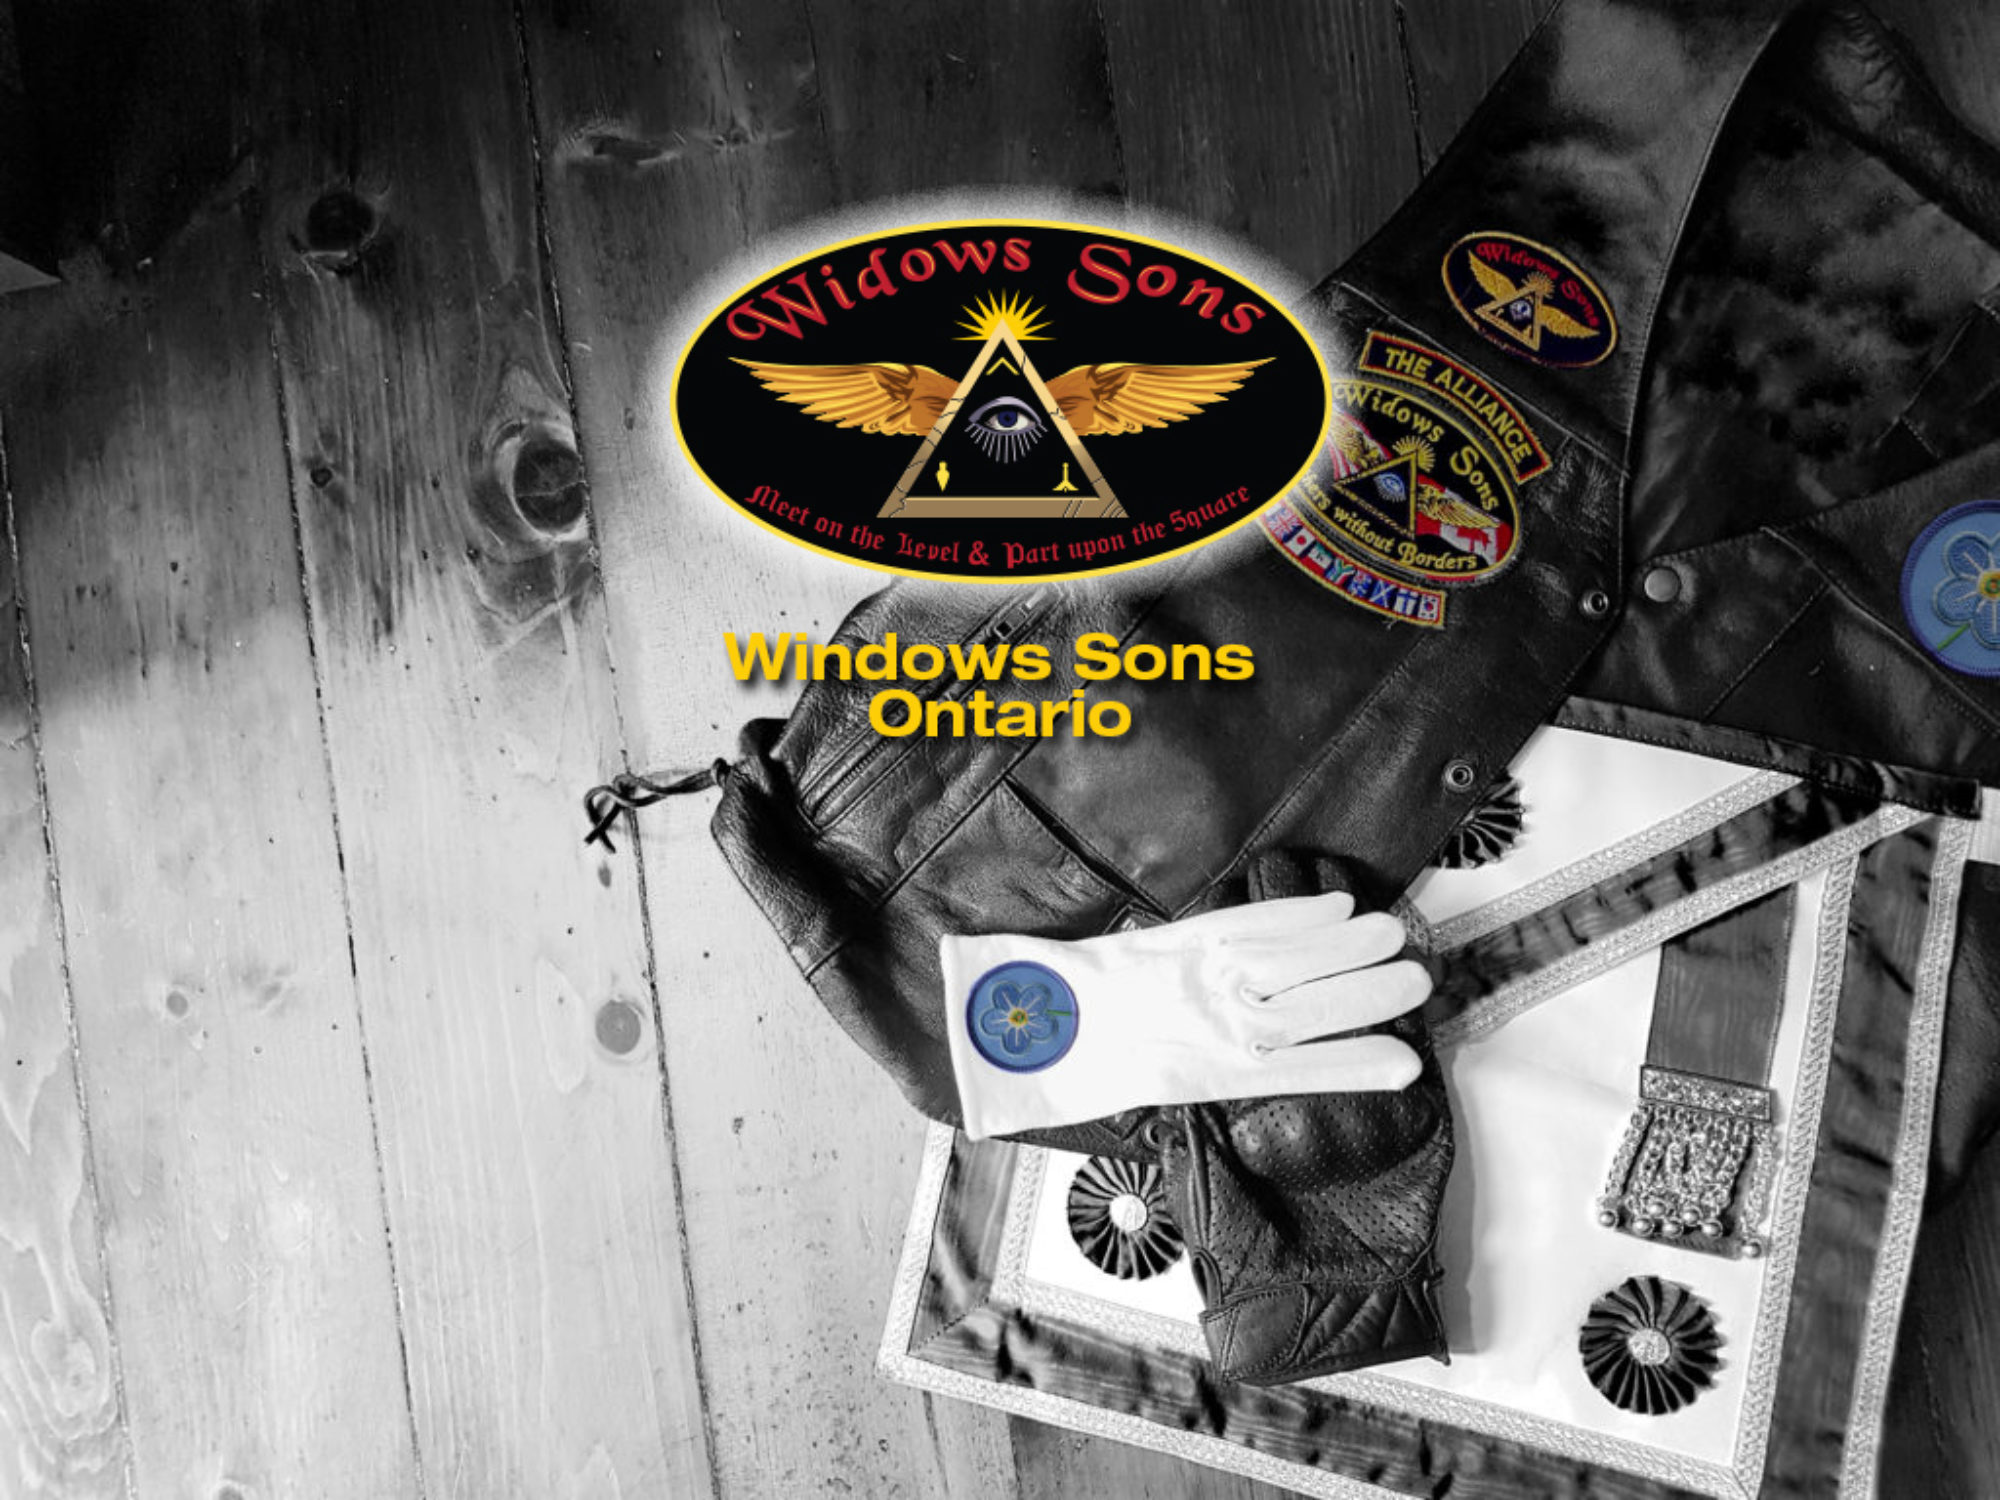 Widows Sons Ontario